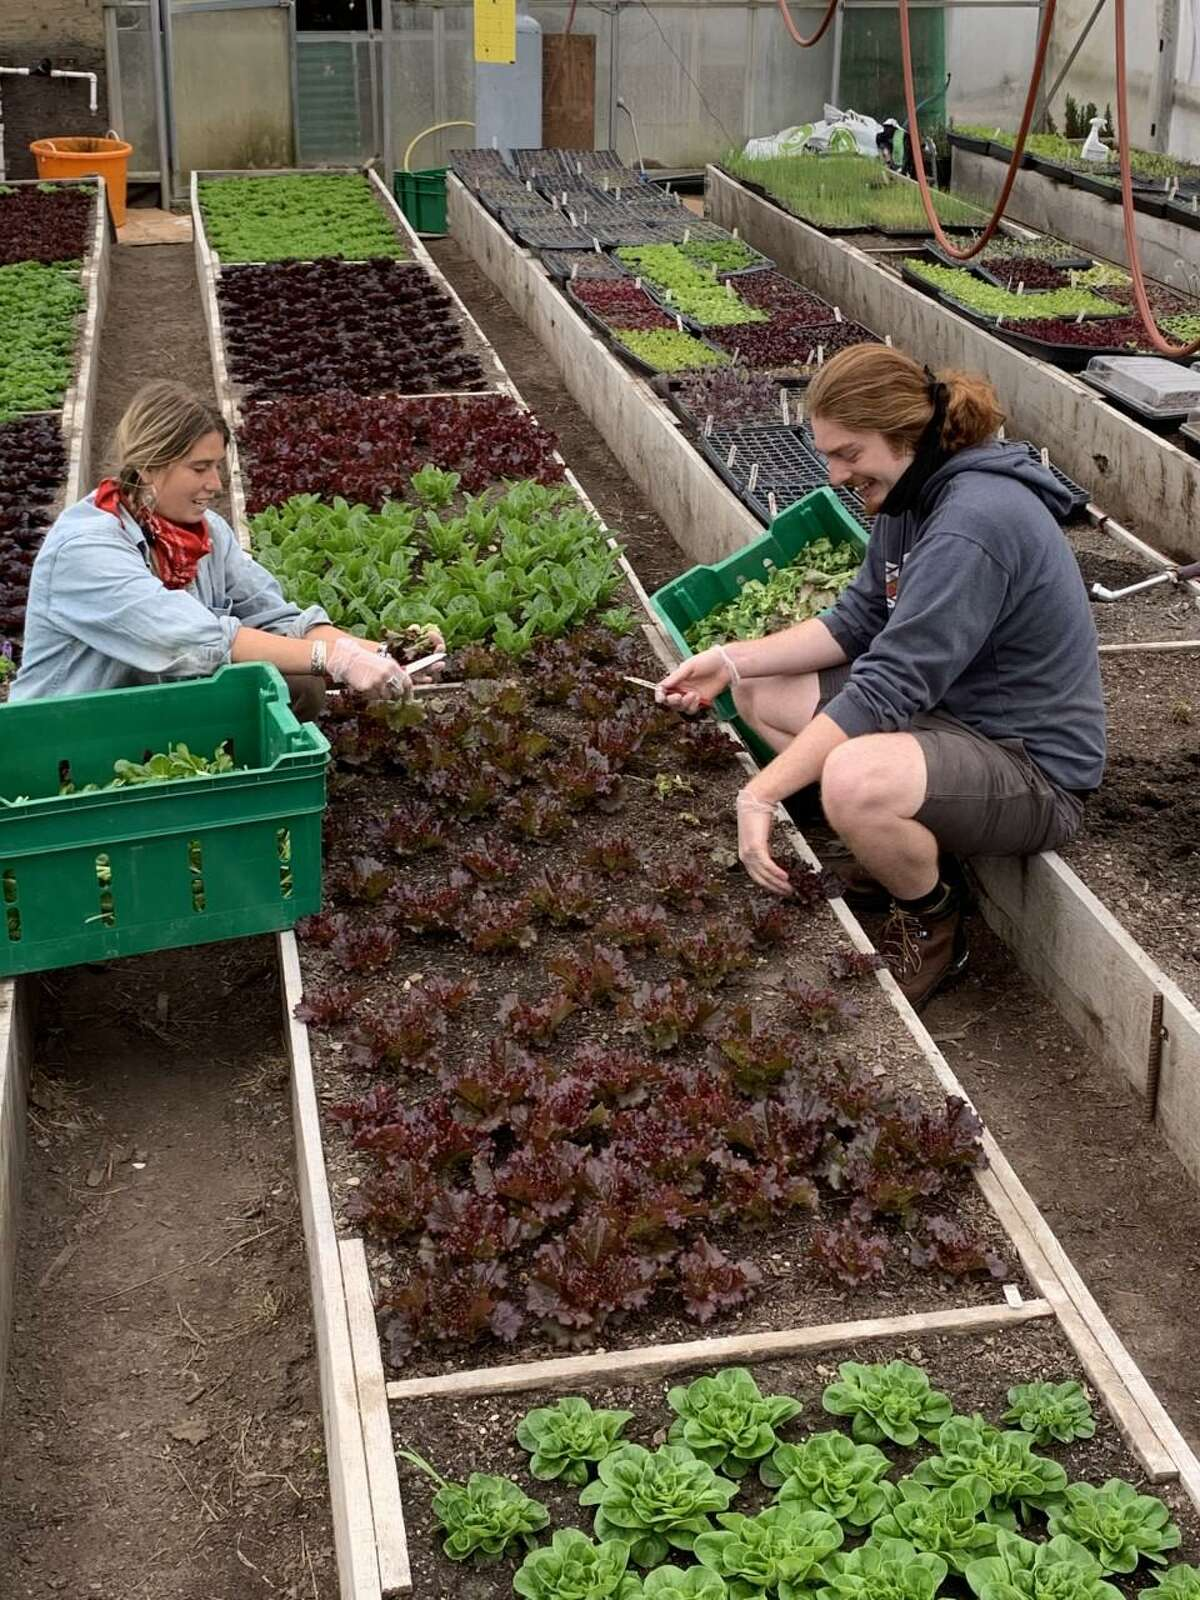 Taylor Matzke, left, and Dan Taylor harvest lettuce in the greenhouse at Millstone Farm on April 20. The salad greens are destined for Open Door Shelter.